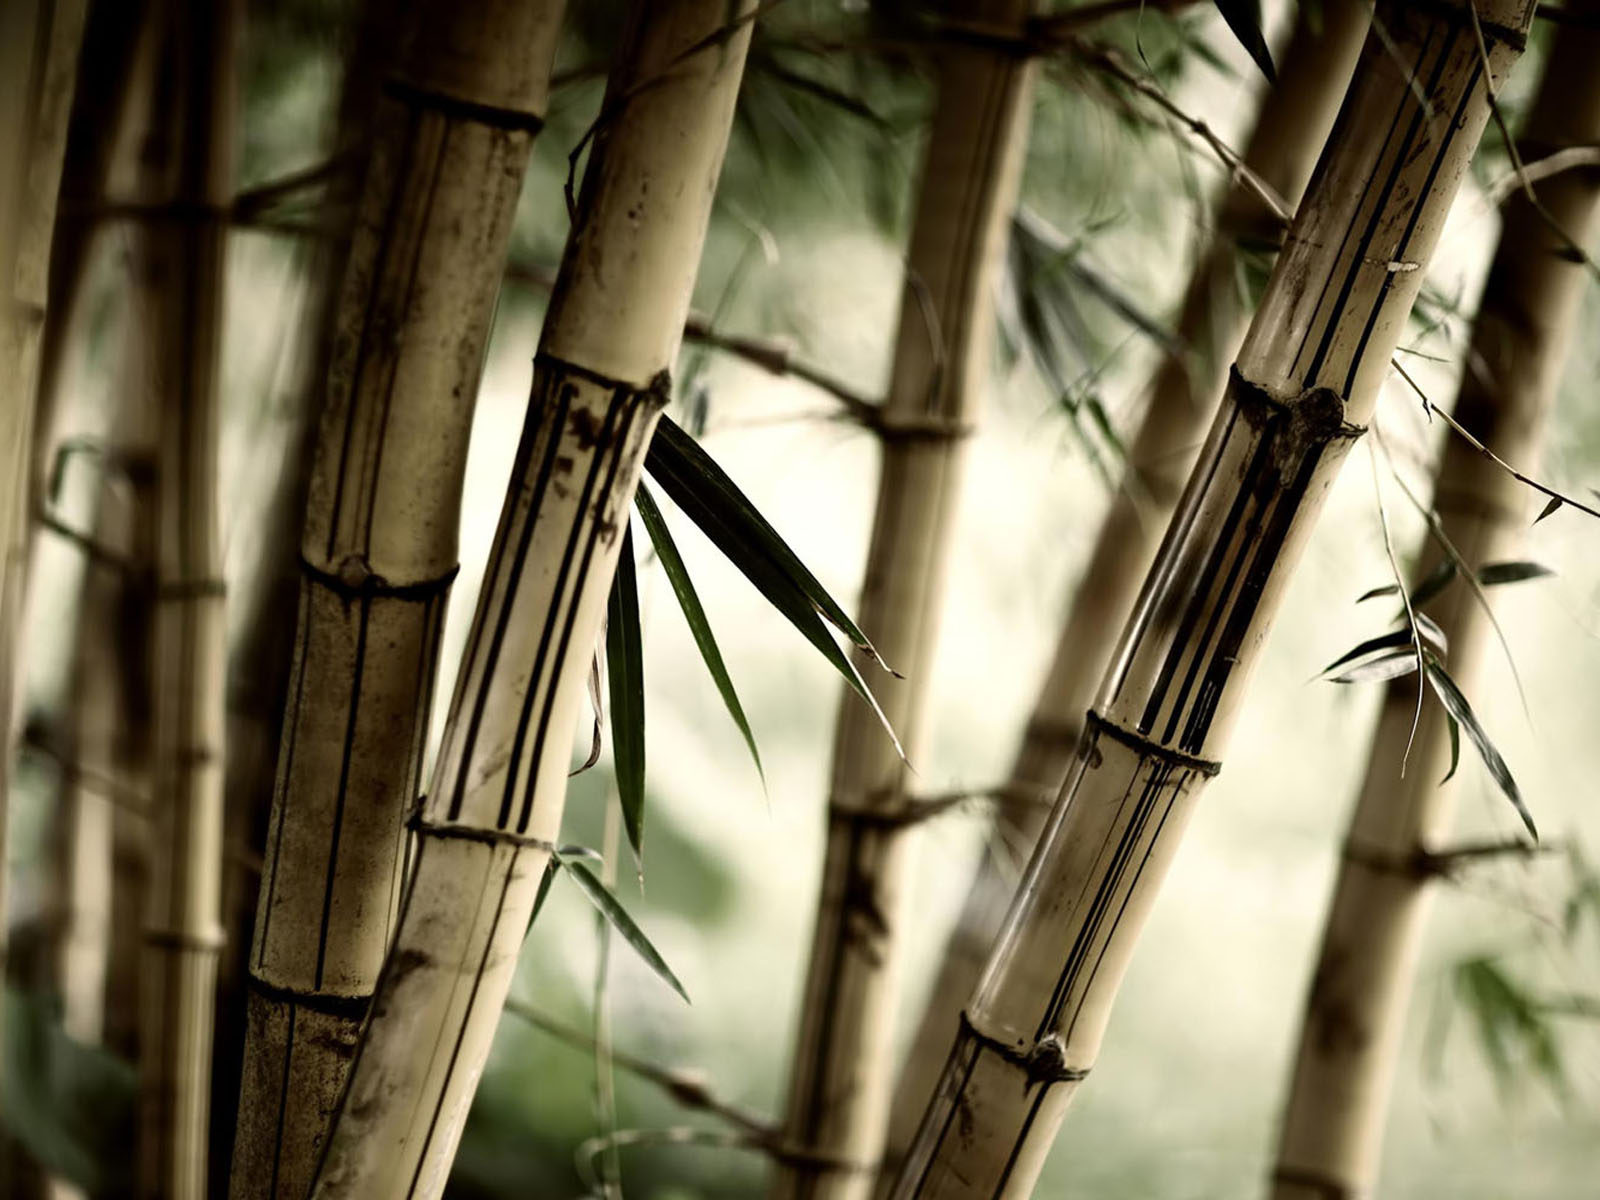 Wallpapers bamboo wallpapers for Bamboo wall mural wallpaper